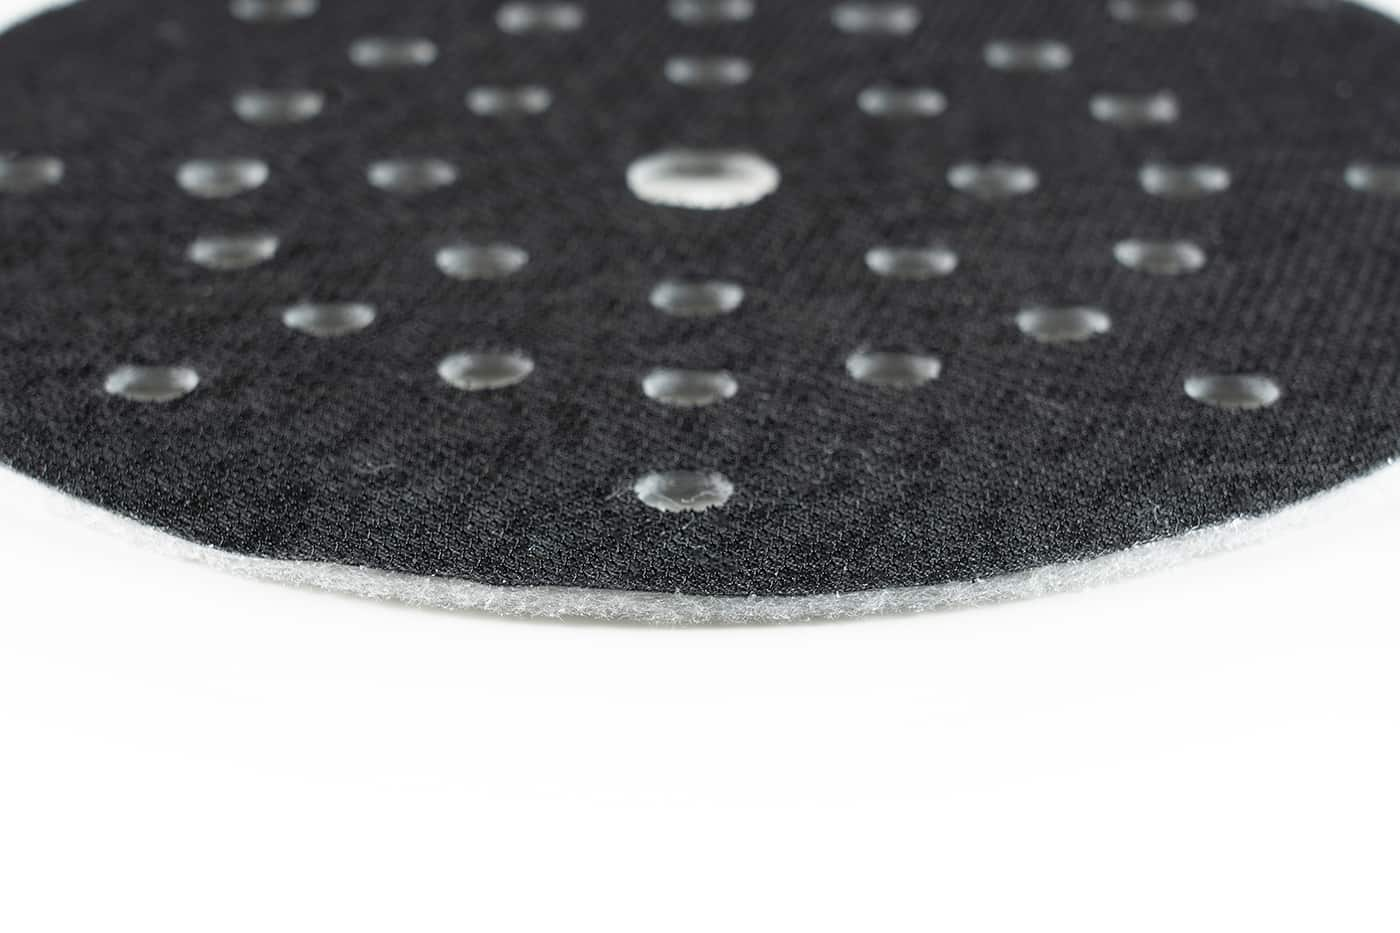 Innovatively designed to protect the backing pad and increase its lifespan, while providing maximum dust extraction. It is ideal for use with 750 Net Discs 225mm and 510 Velour discs 225mm.